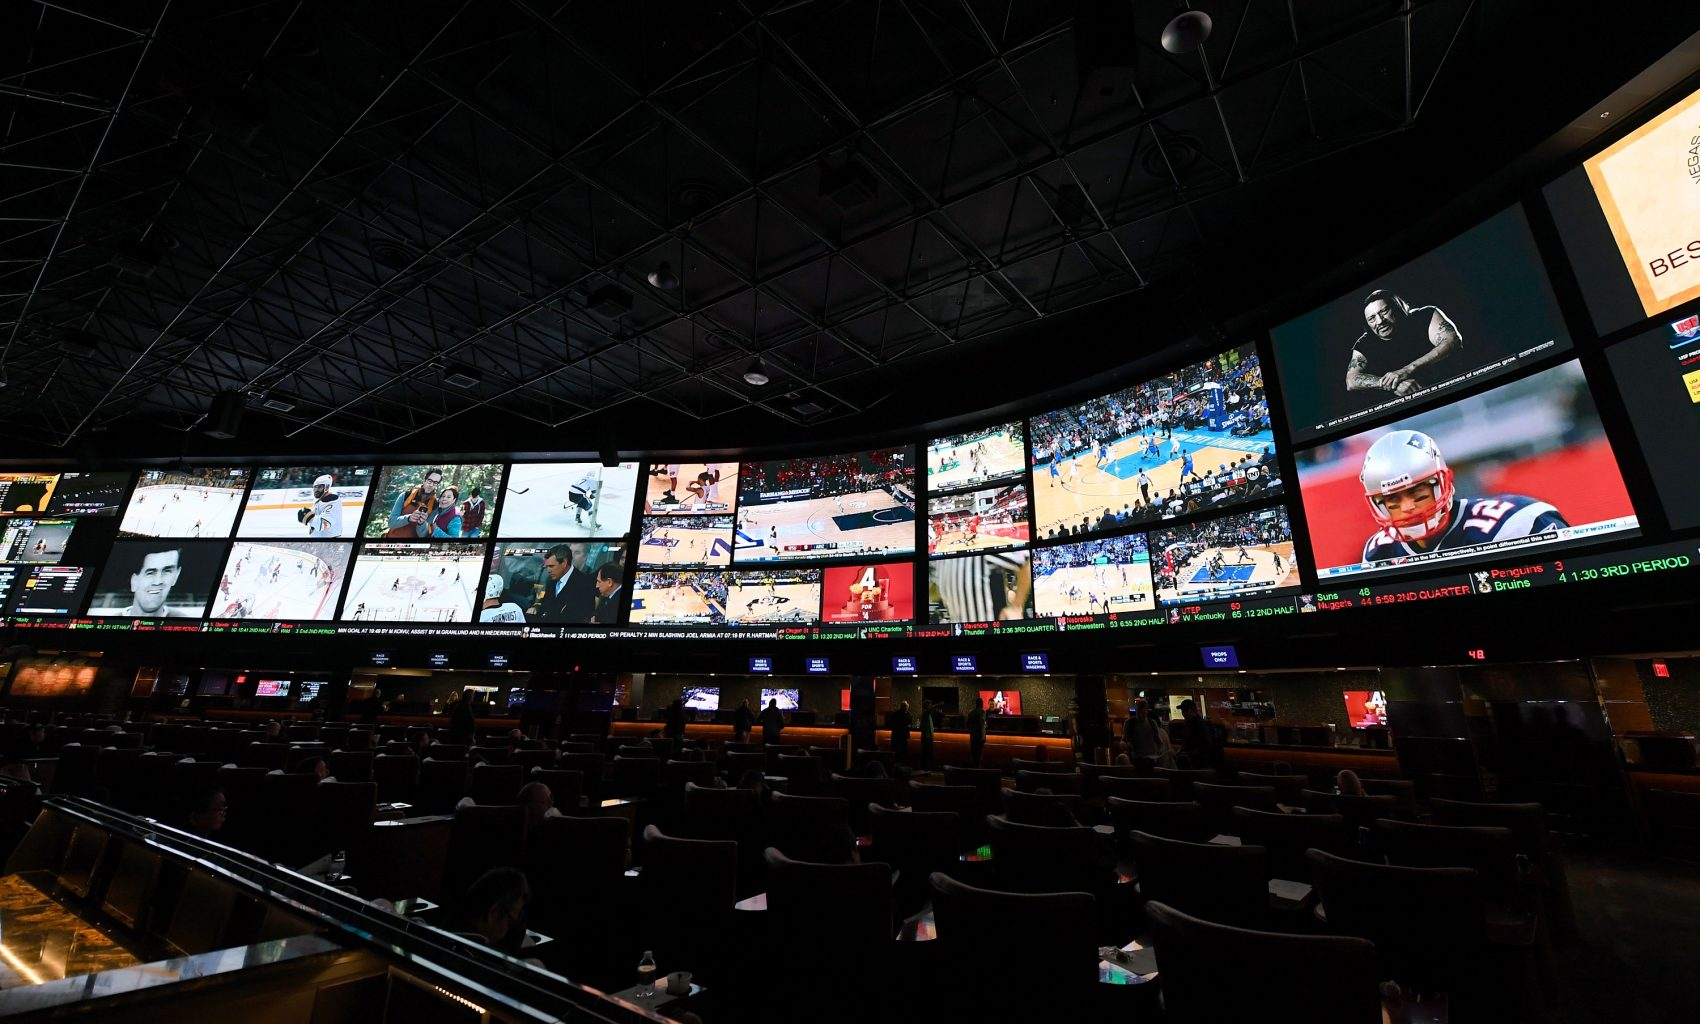 sports gambling news - 3